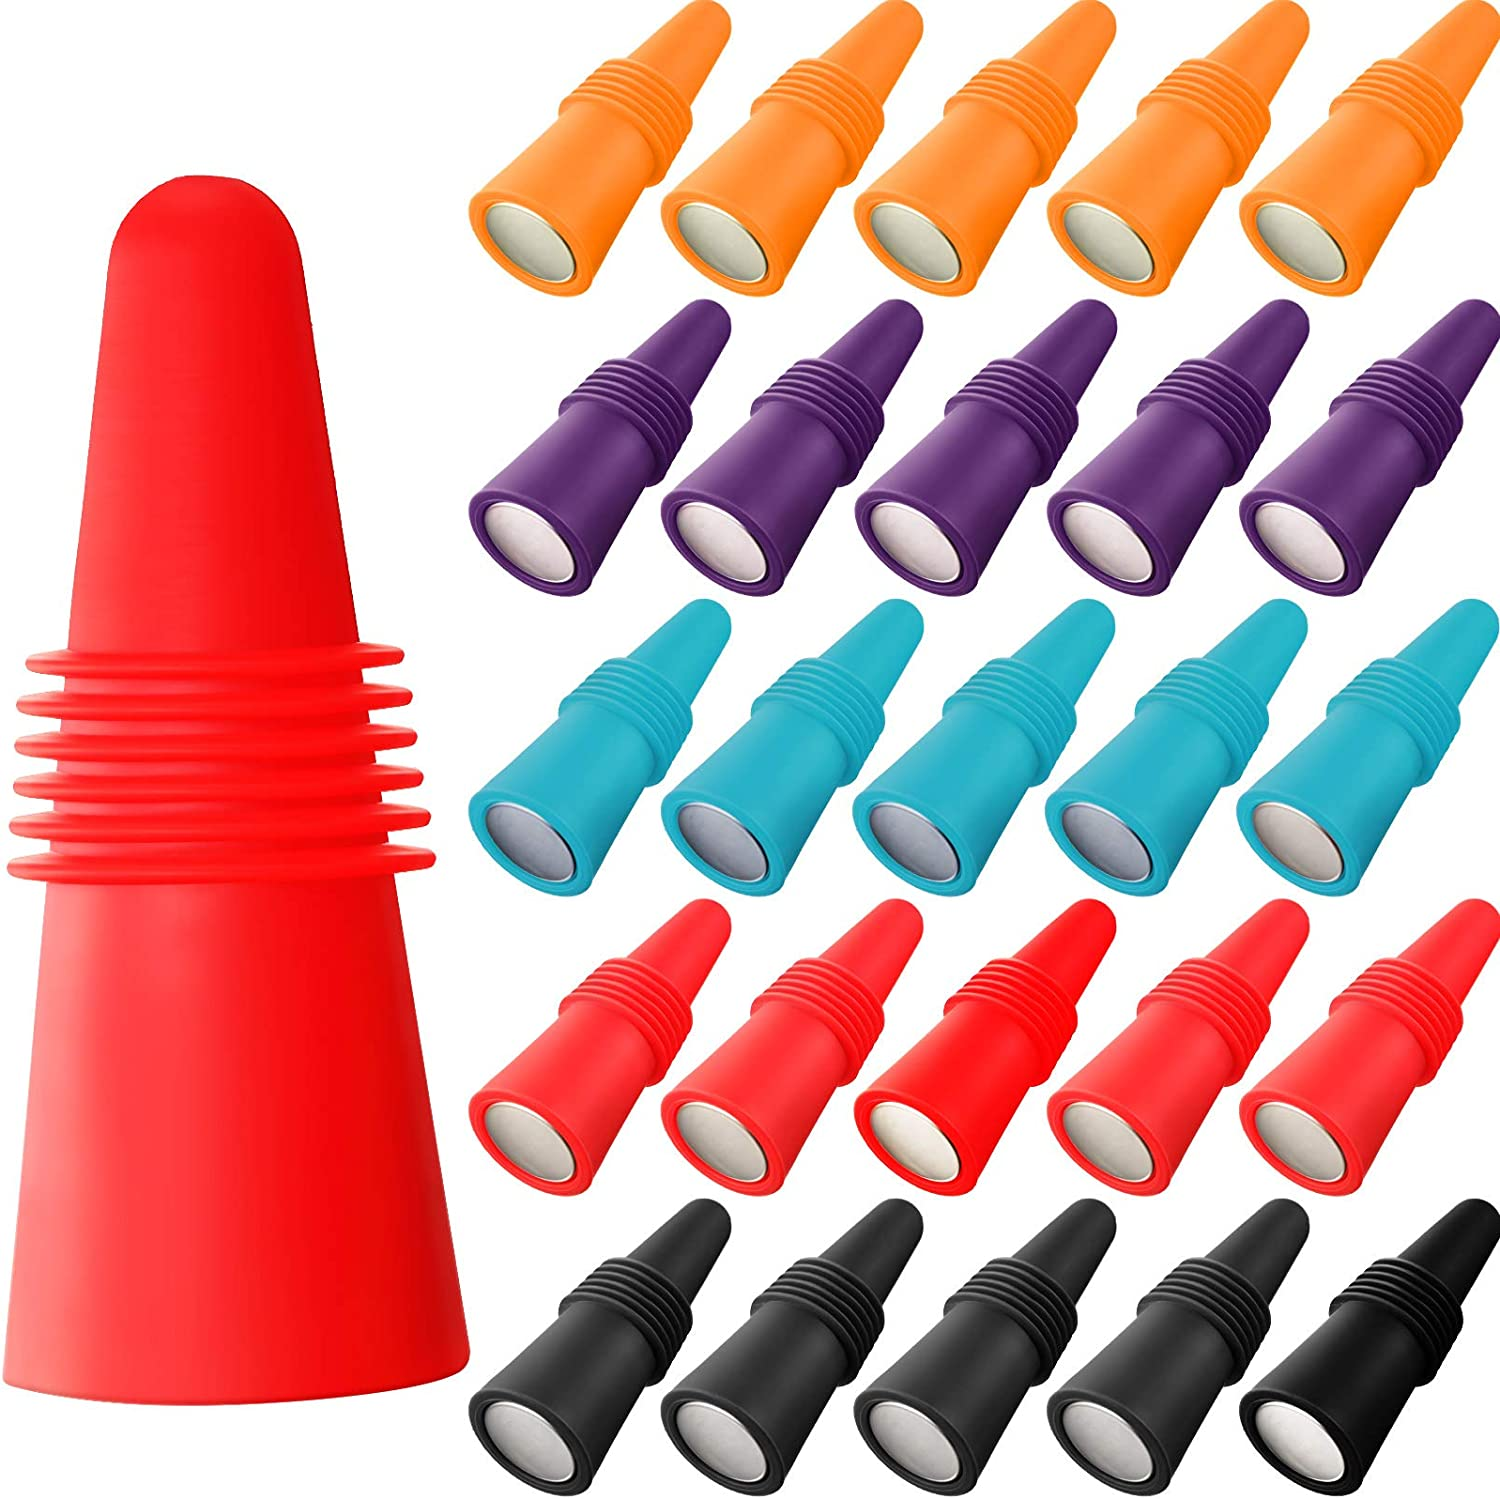 20 Pieces Wine Bottle Stopper Silicone Wine Bottle Sealer Silicone Beverage Bottle Plug Wine and Beverage Bottle Stopper Rubber Wine Saver for Bar, Kitchen, Holiday Party, Wedding